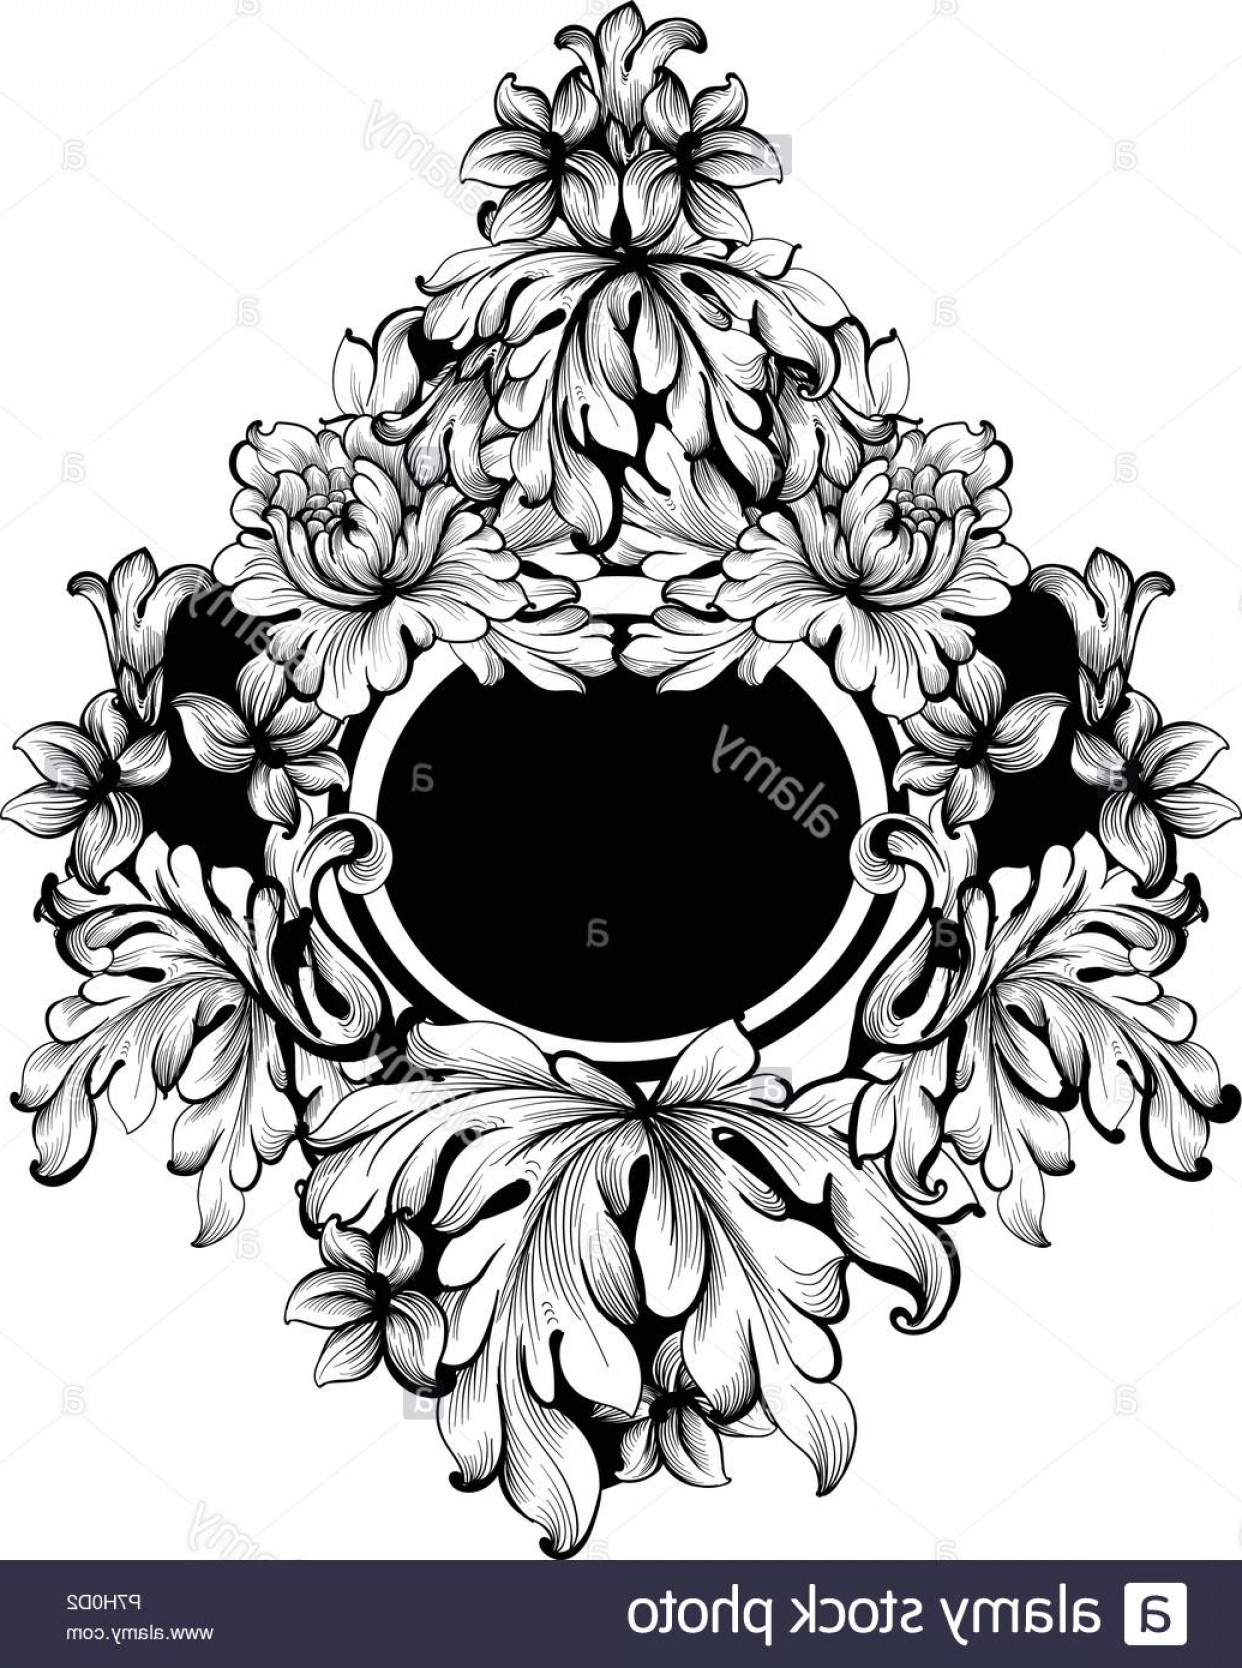 Rococo Frame Vector: Baroque Round Frame Vector Classic Rich Ornamented Carved Decors Rococo Sophisticated Design Image